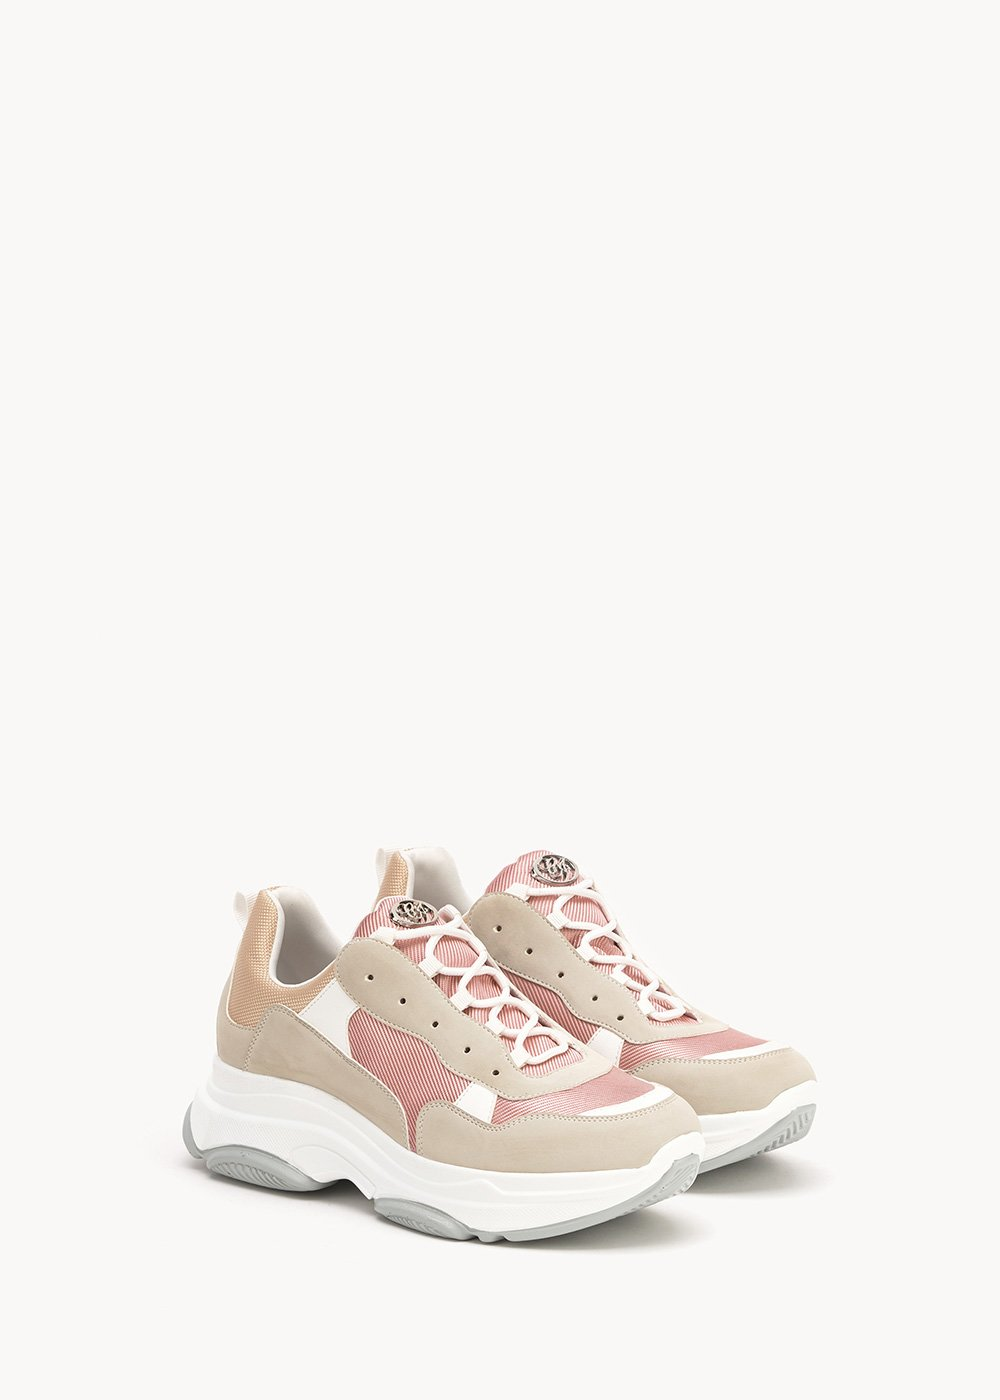 Skin sneakers in technical fabric - Lips / White - Woman